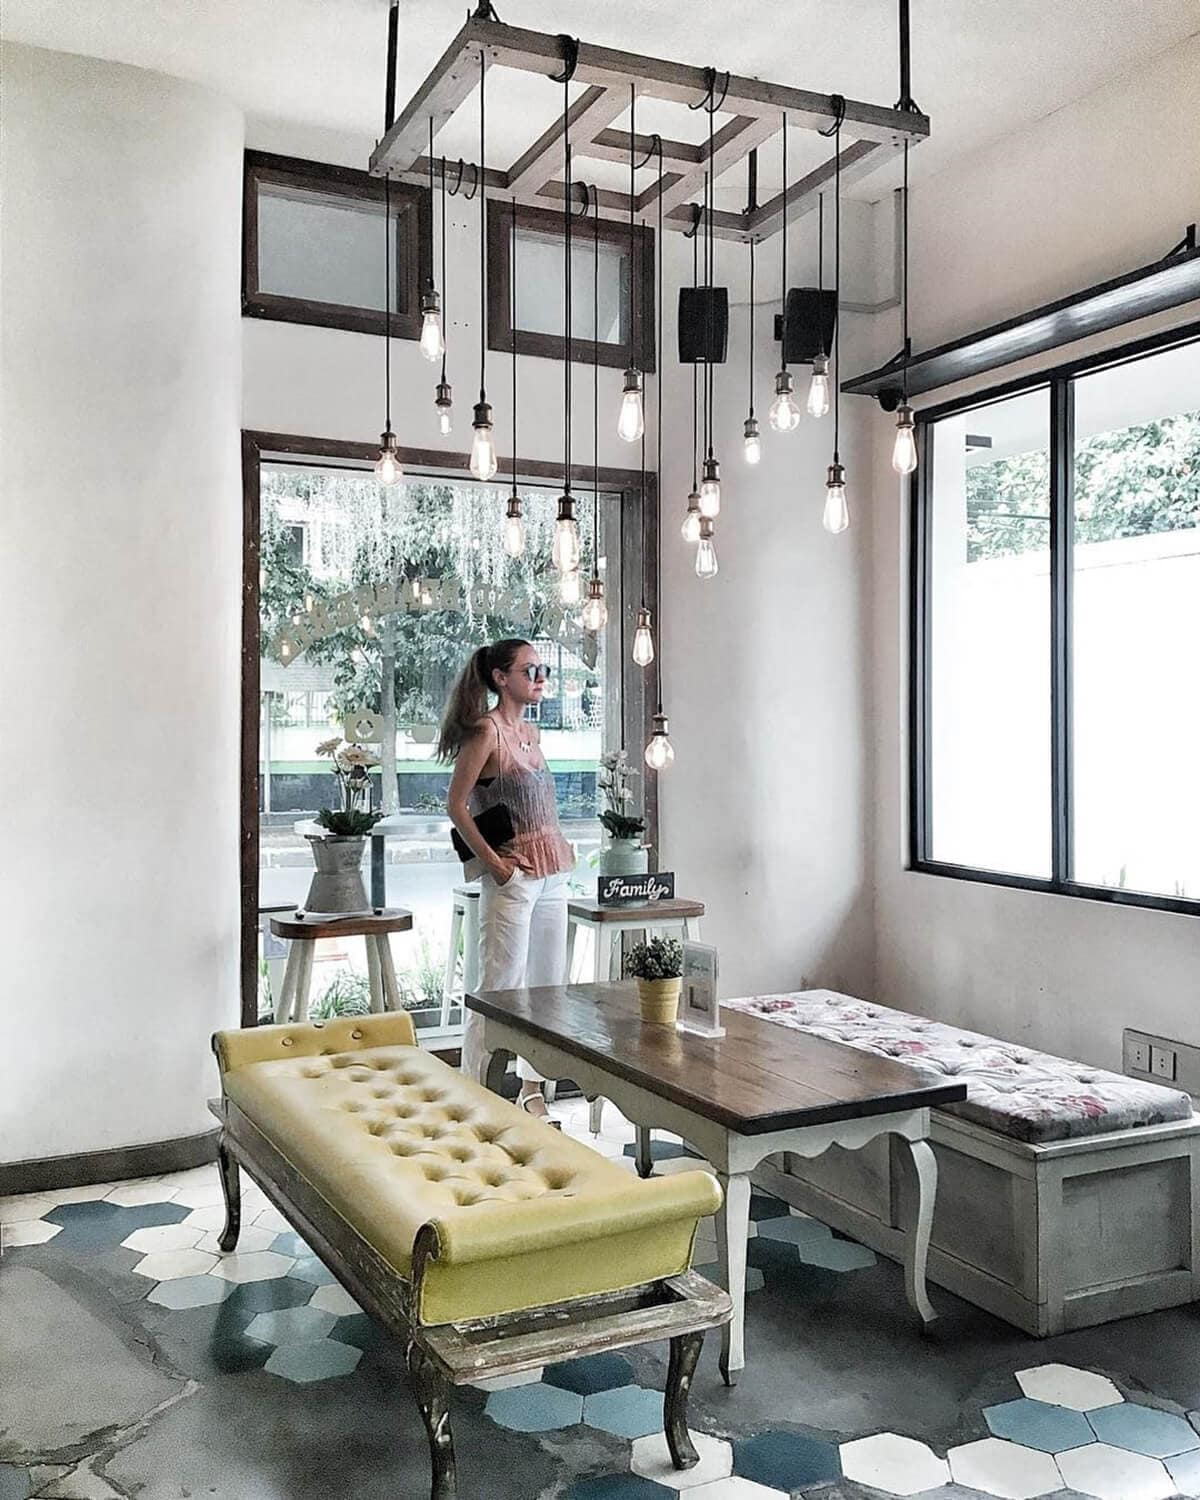 Design Hotel Minimalis 17 Artsy Hotels In Bandung That Will Make You Be Instagram Darling